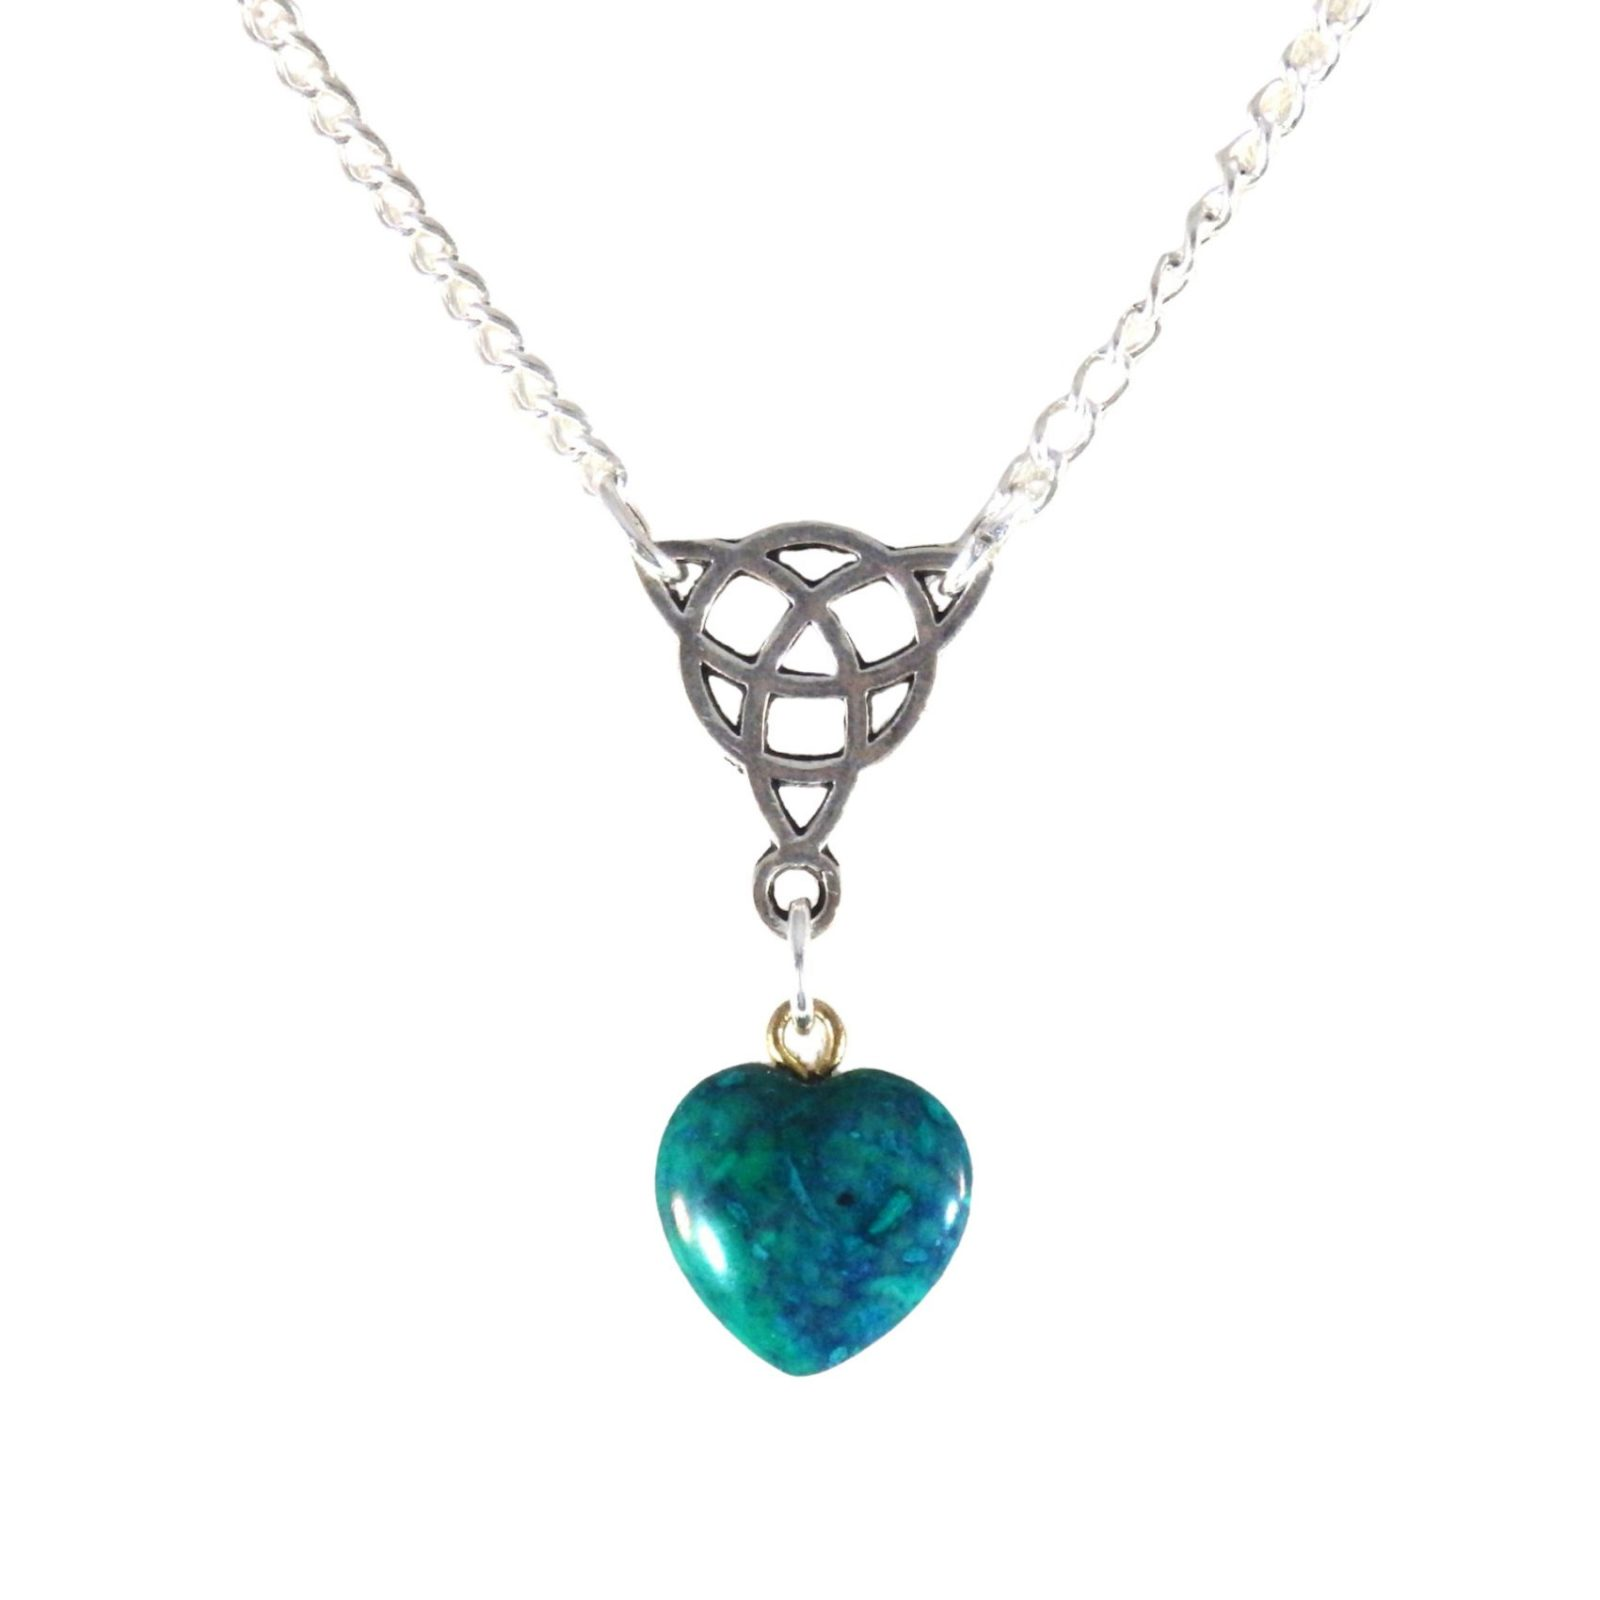 Triquetra and green heart necklace 1770